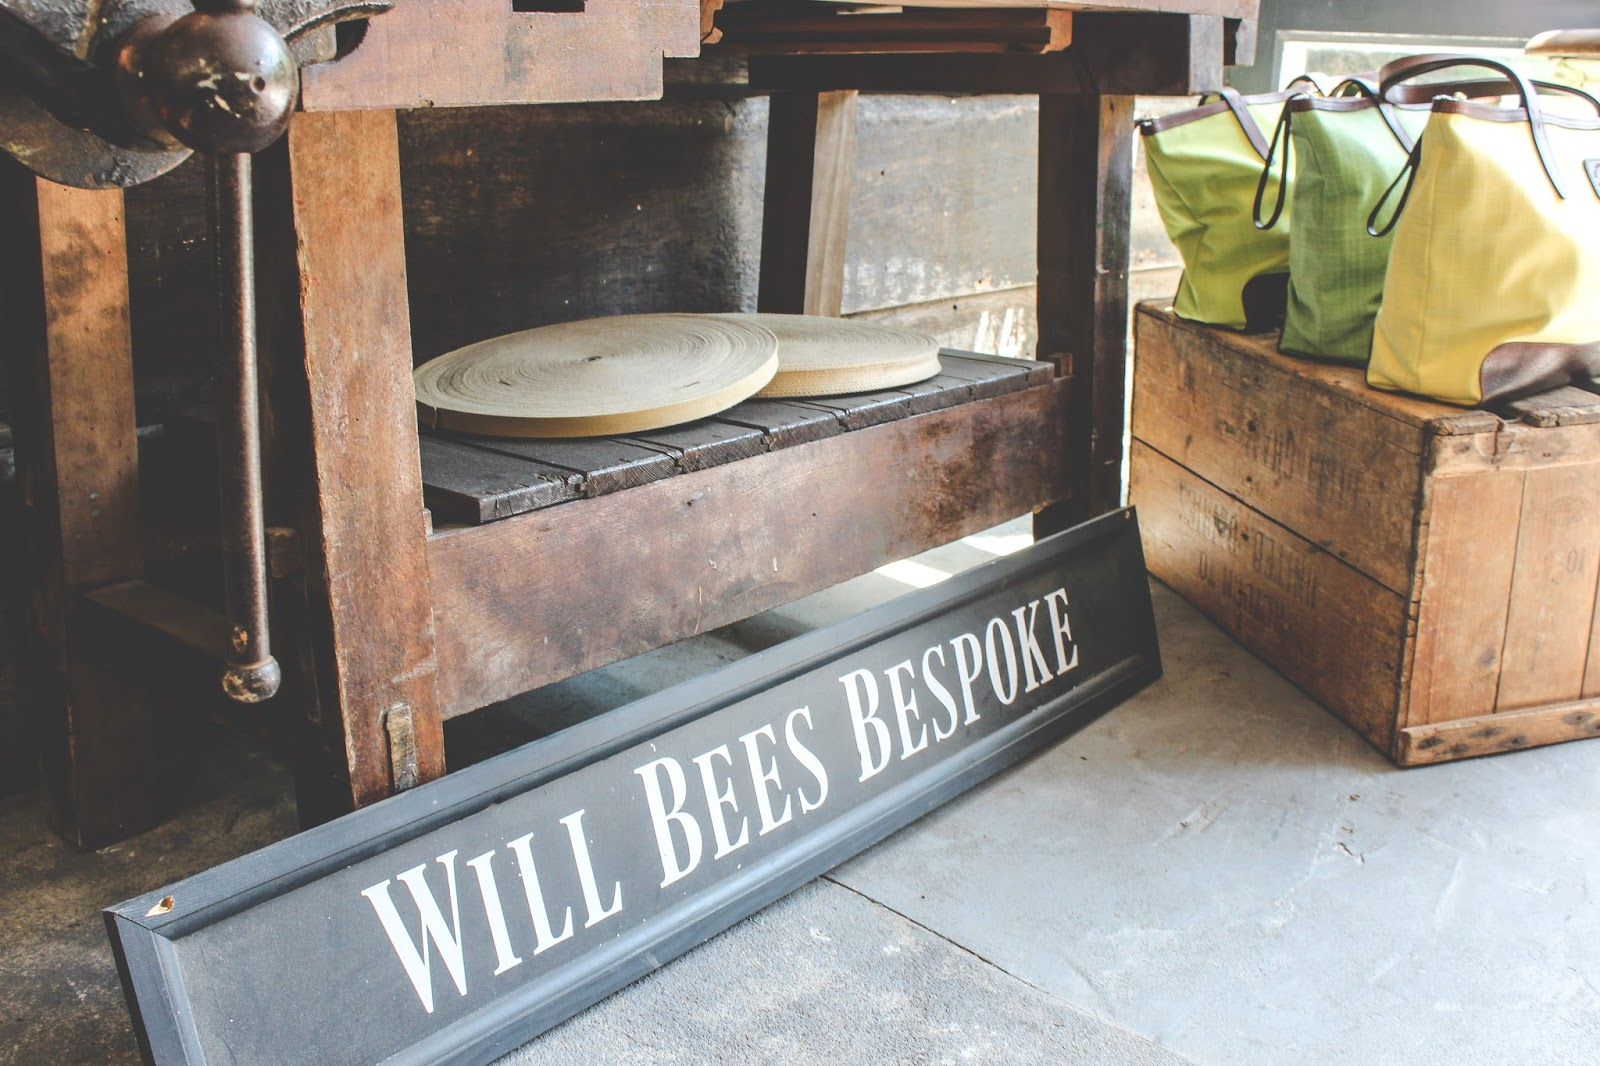 Will Bees Bespoke, Salcombe